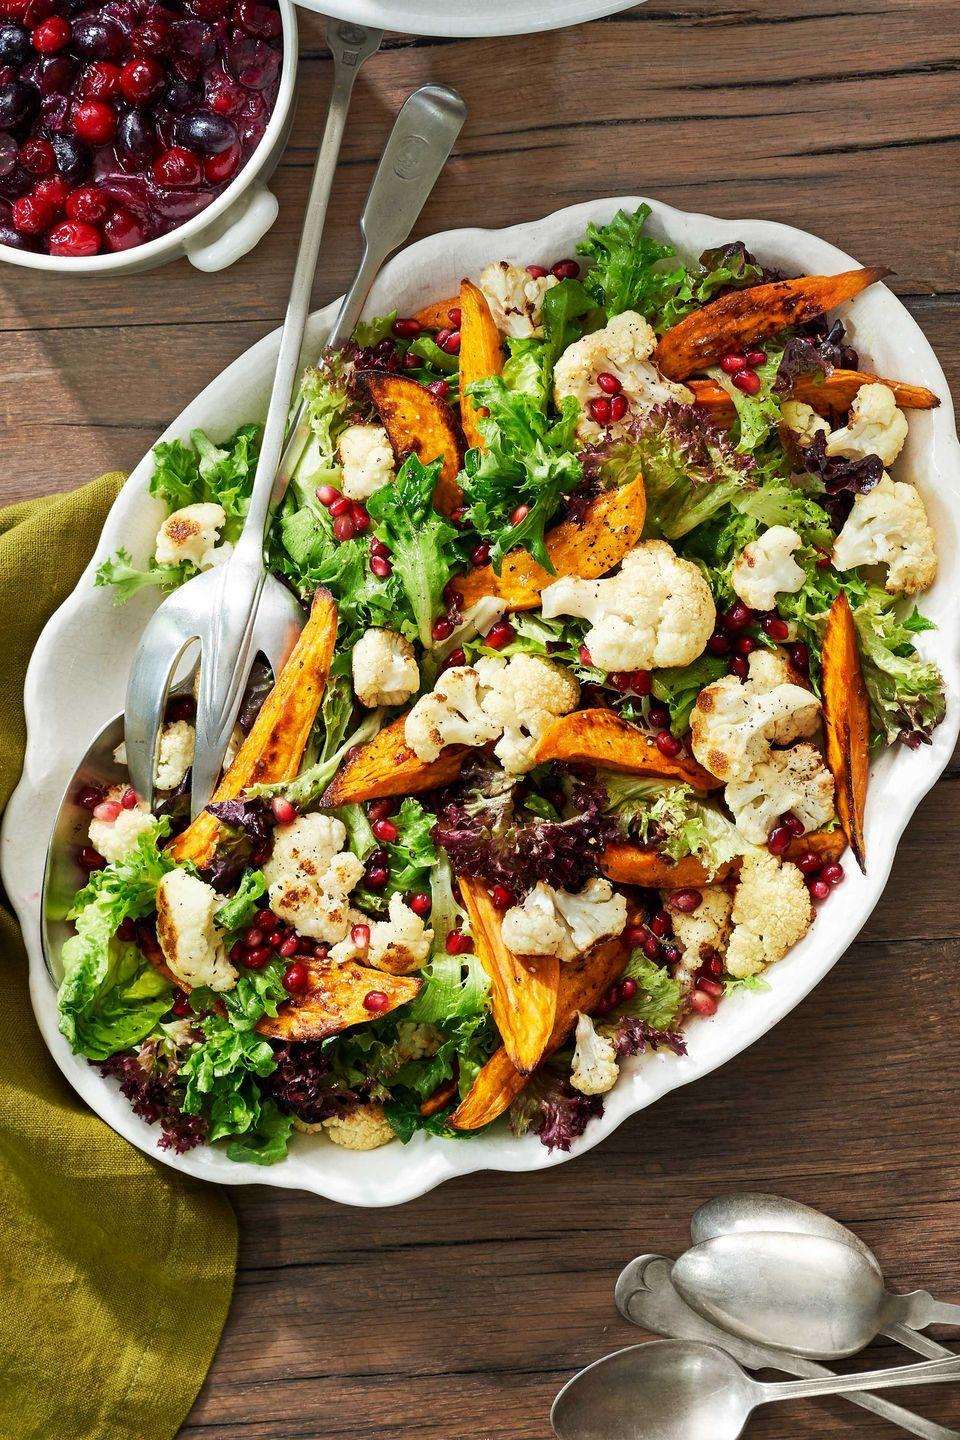 """<p>Pump up a side salad with warm, roasted vegetables.<br></p><p><strong><a href=""""https://www.countryliving.com/food-drinks/recipes/a40029/sweet-potato-and-cauliflower-salad-recipe/"""" rel=""""nofollow noopener"""" target=""""_blank"""" data-ylk=""""slk:Get the recipe"""" class=""""link rapid-noclick-resp"""">Get the recipe</a>.</strong></p>"""